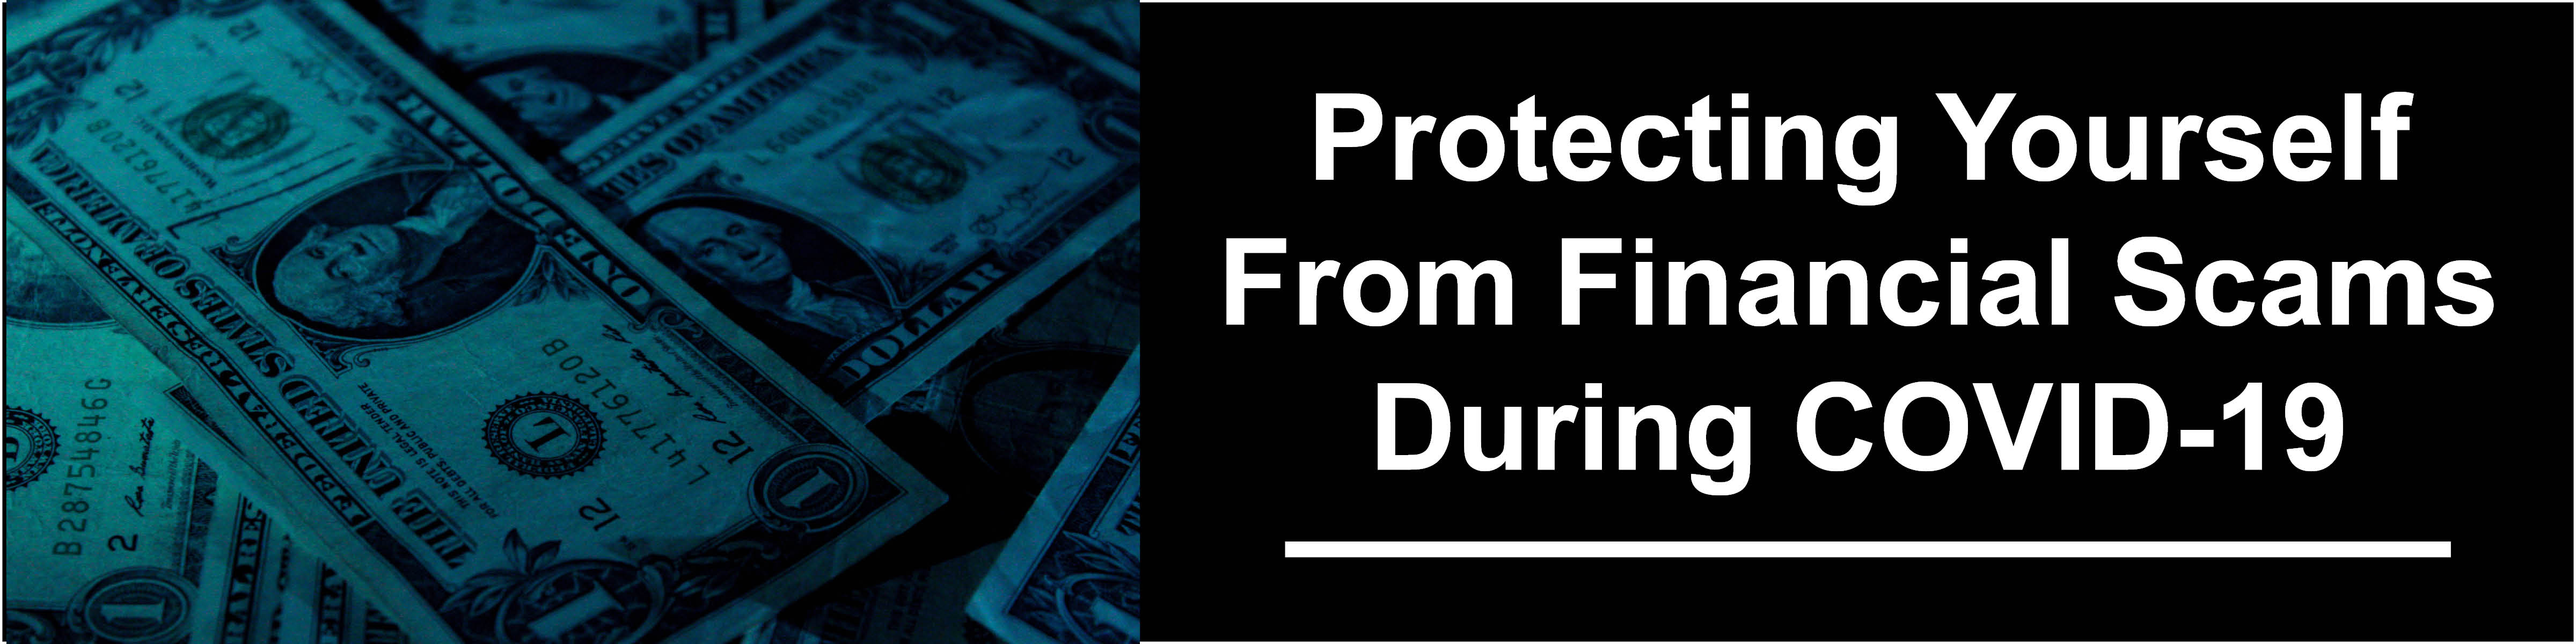 financial-scams-title-image.jpg